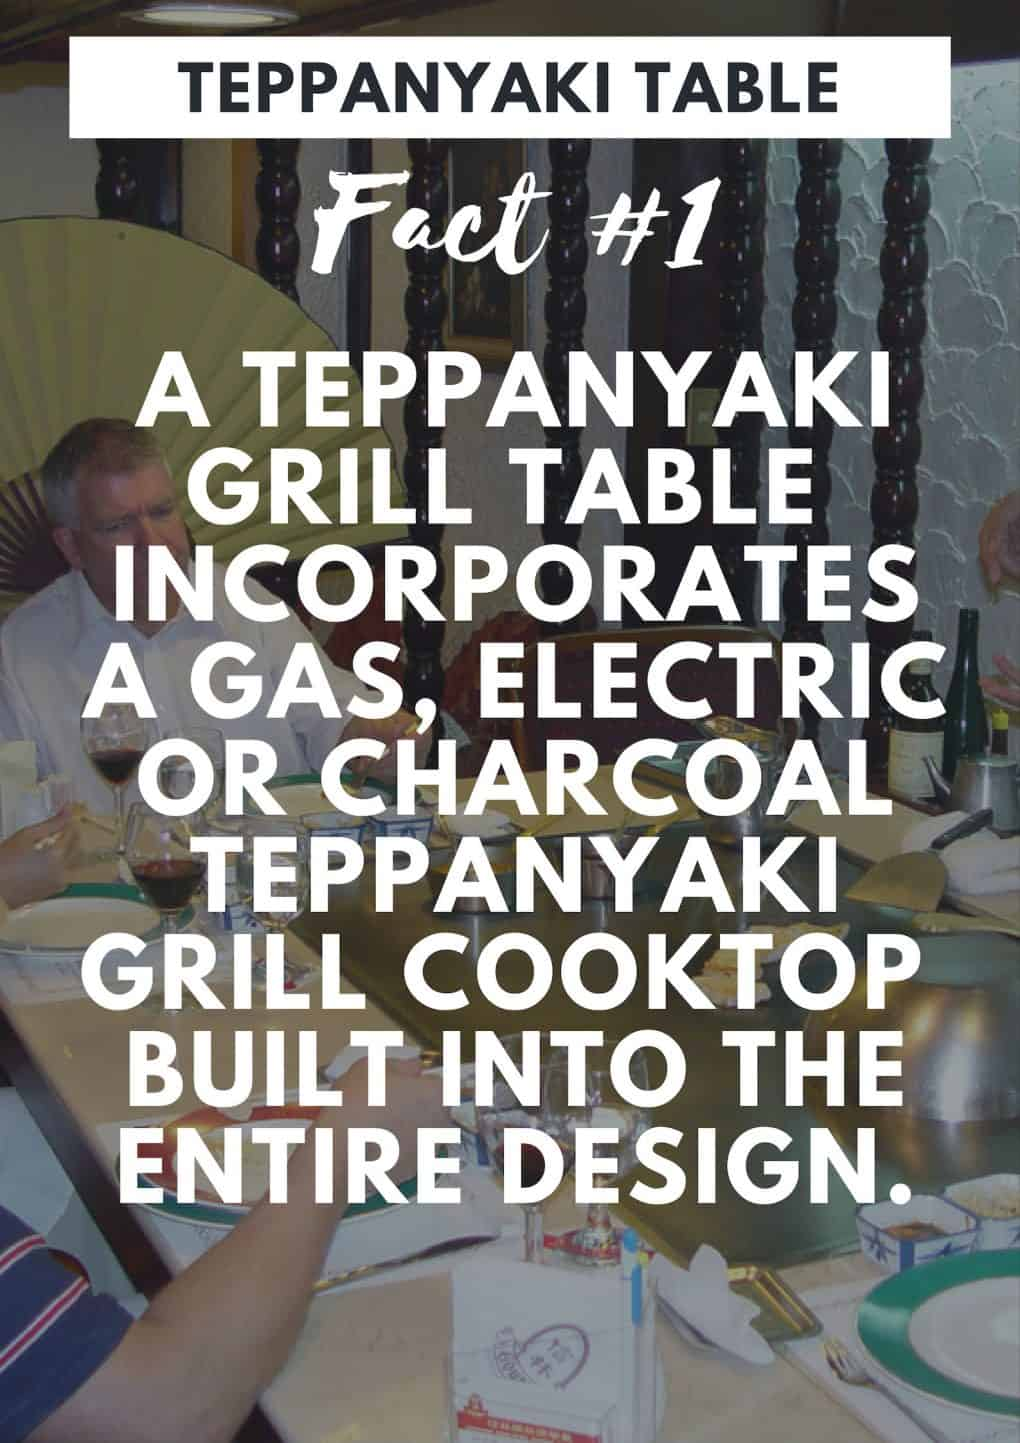 A Teppanyaki table is a table with built in teppanyaki grill plate